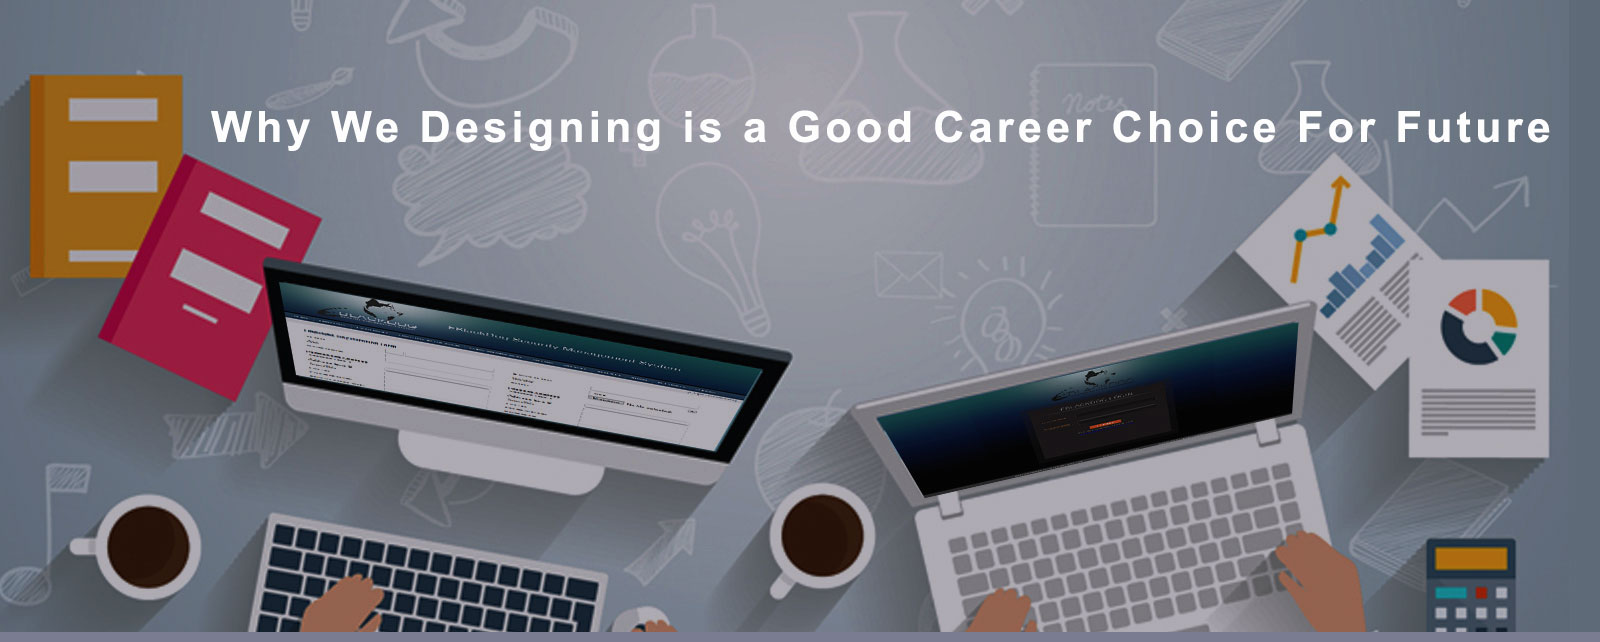 web-designing-a-good-career-choice